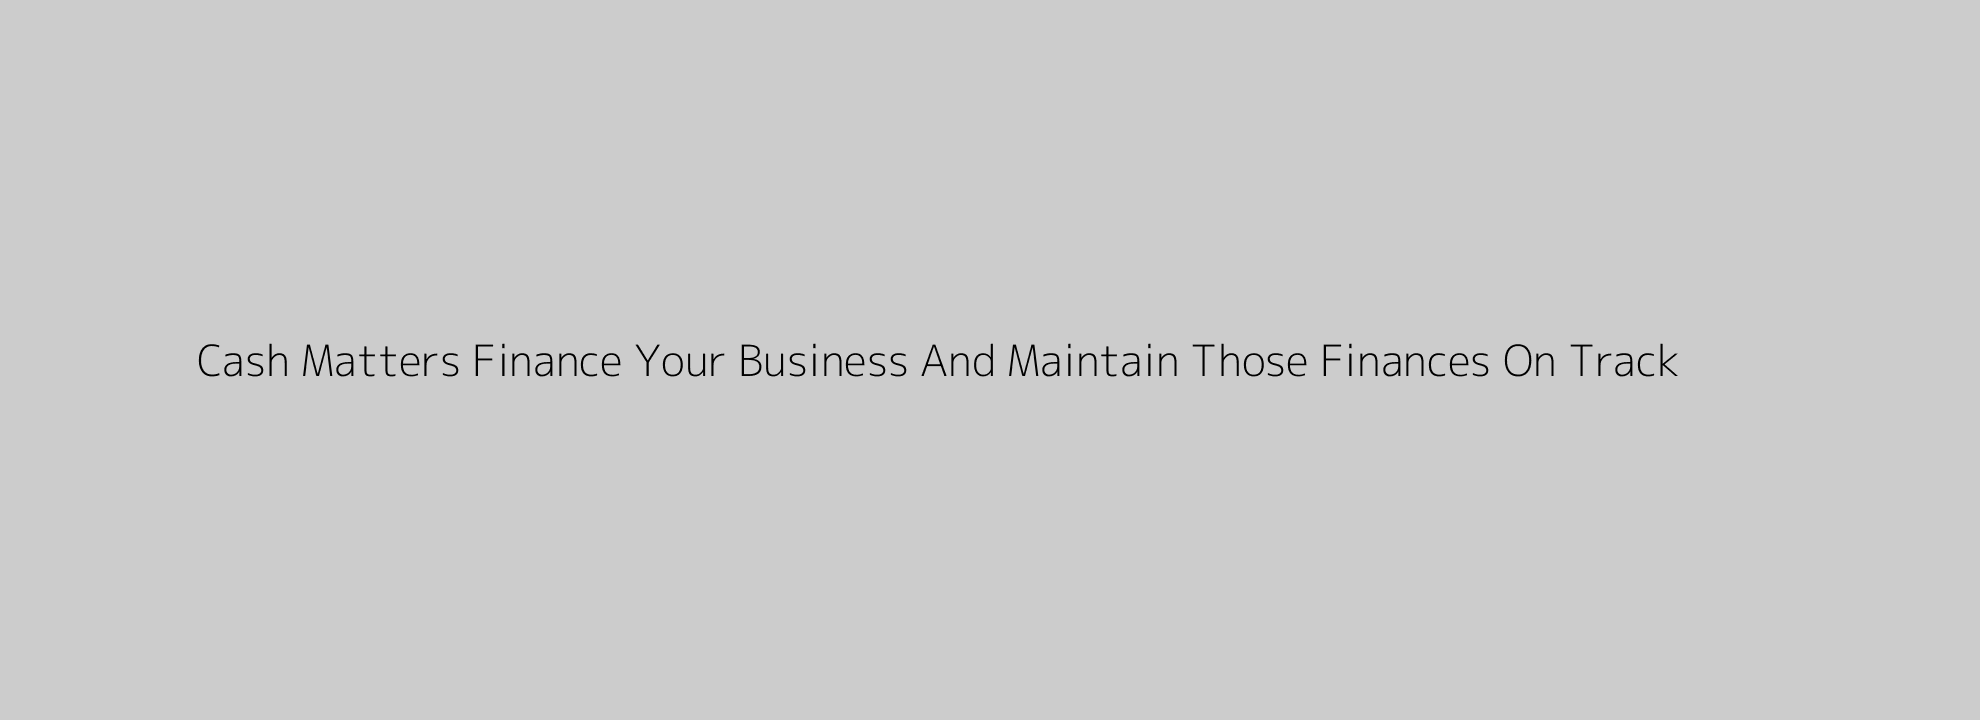 Cash Matters Finance Your Business And Maintain Those Finances On Track